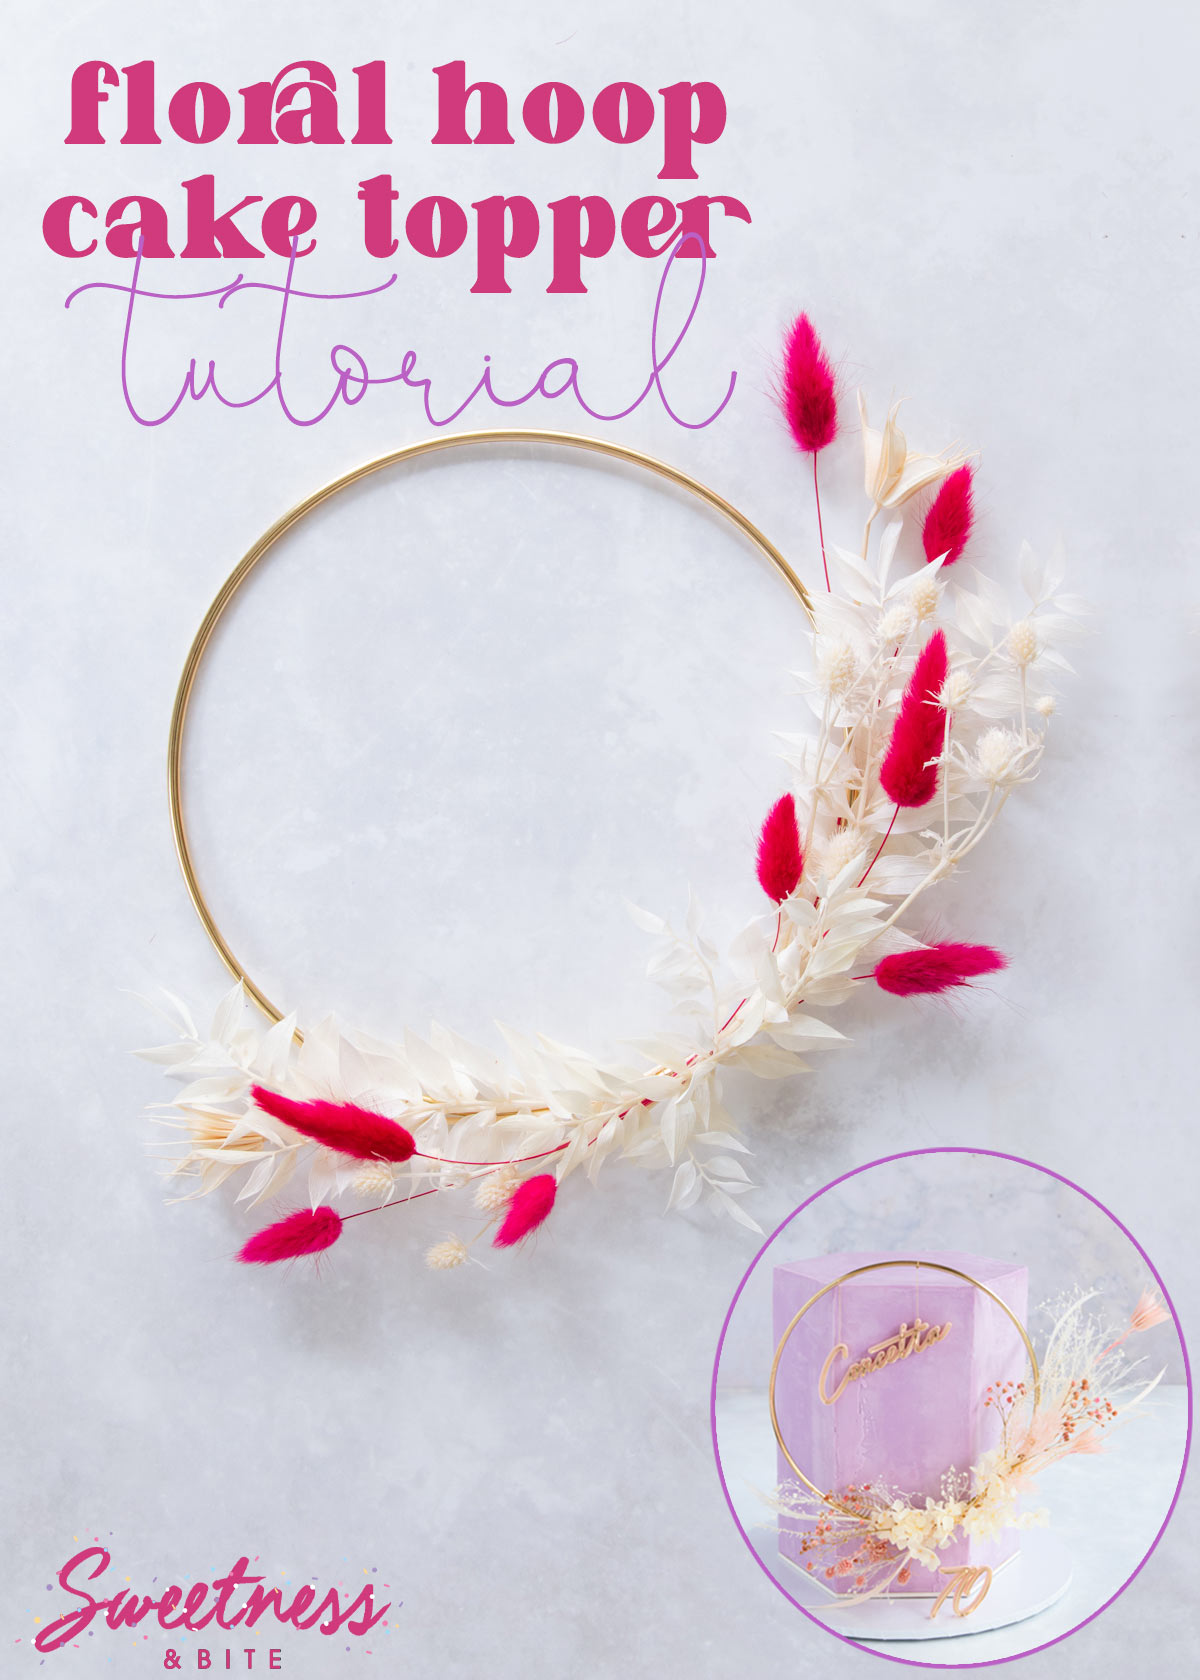 A gold hoop decorated with pink and cream flowers and leaves, text overlay reads